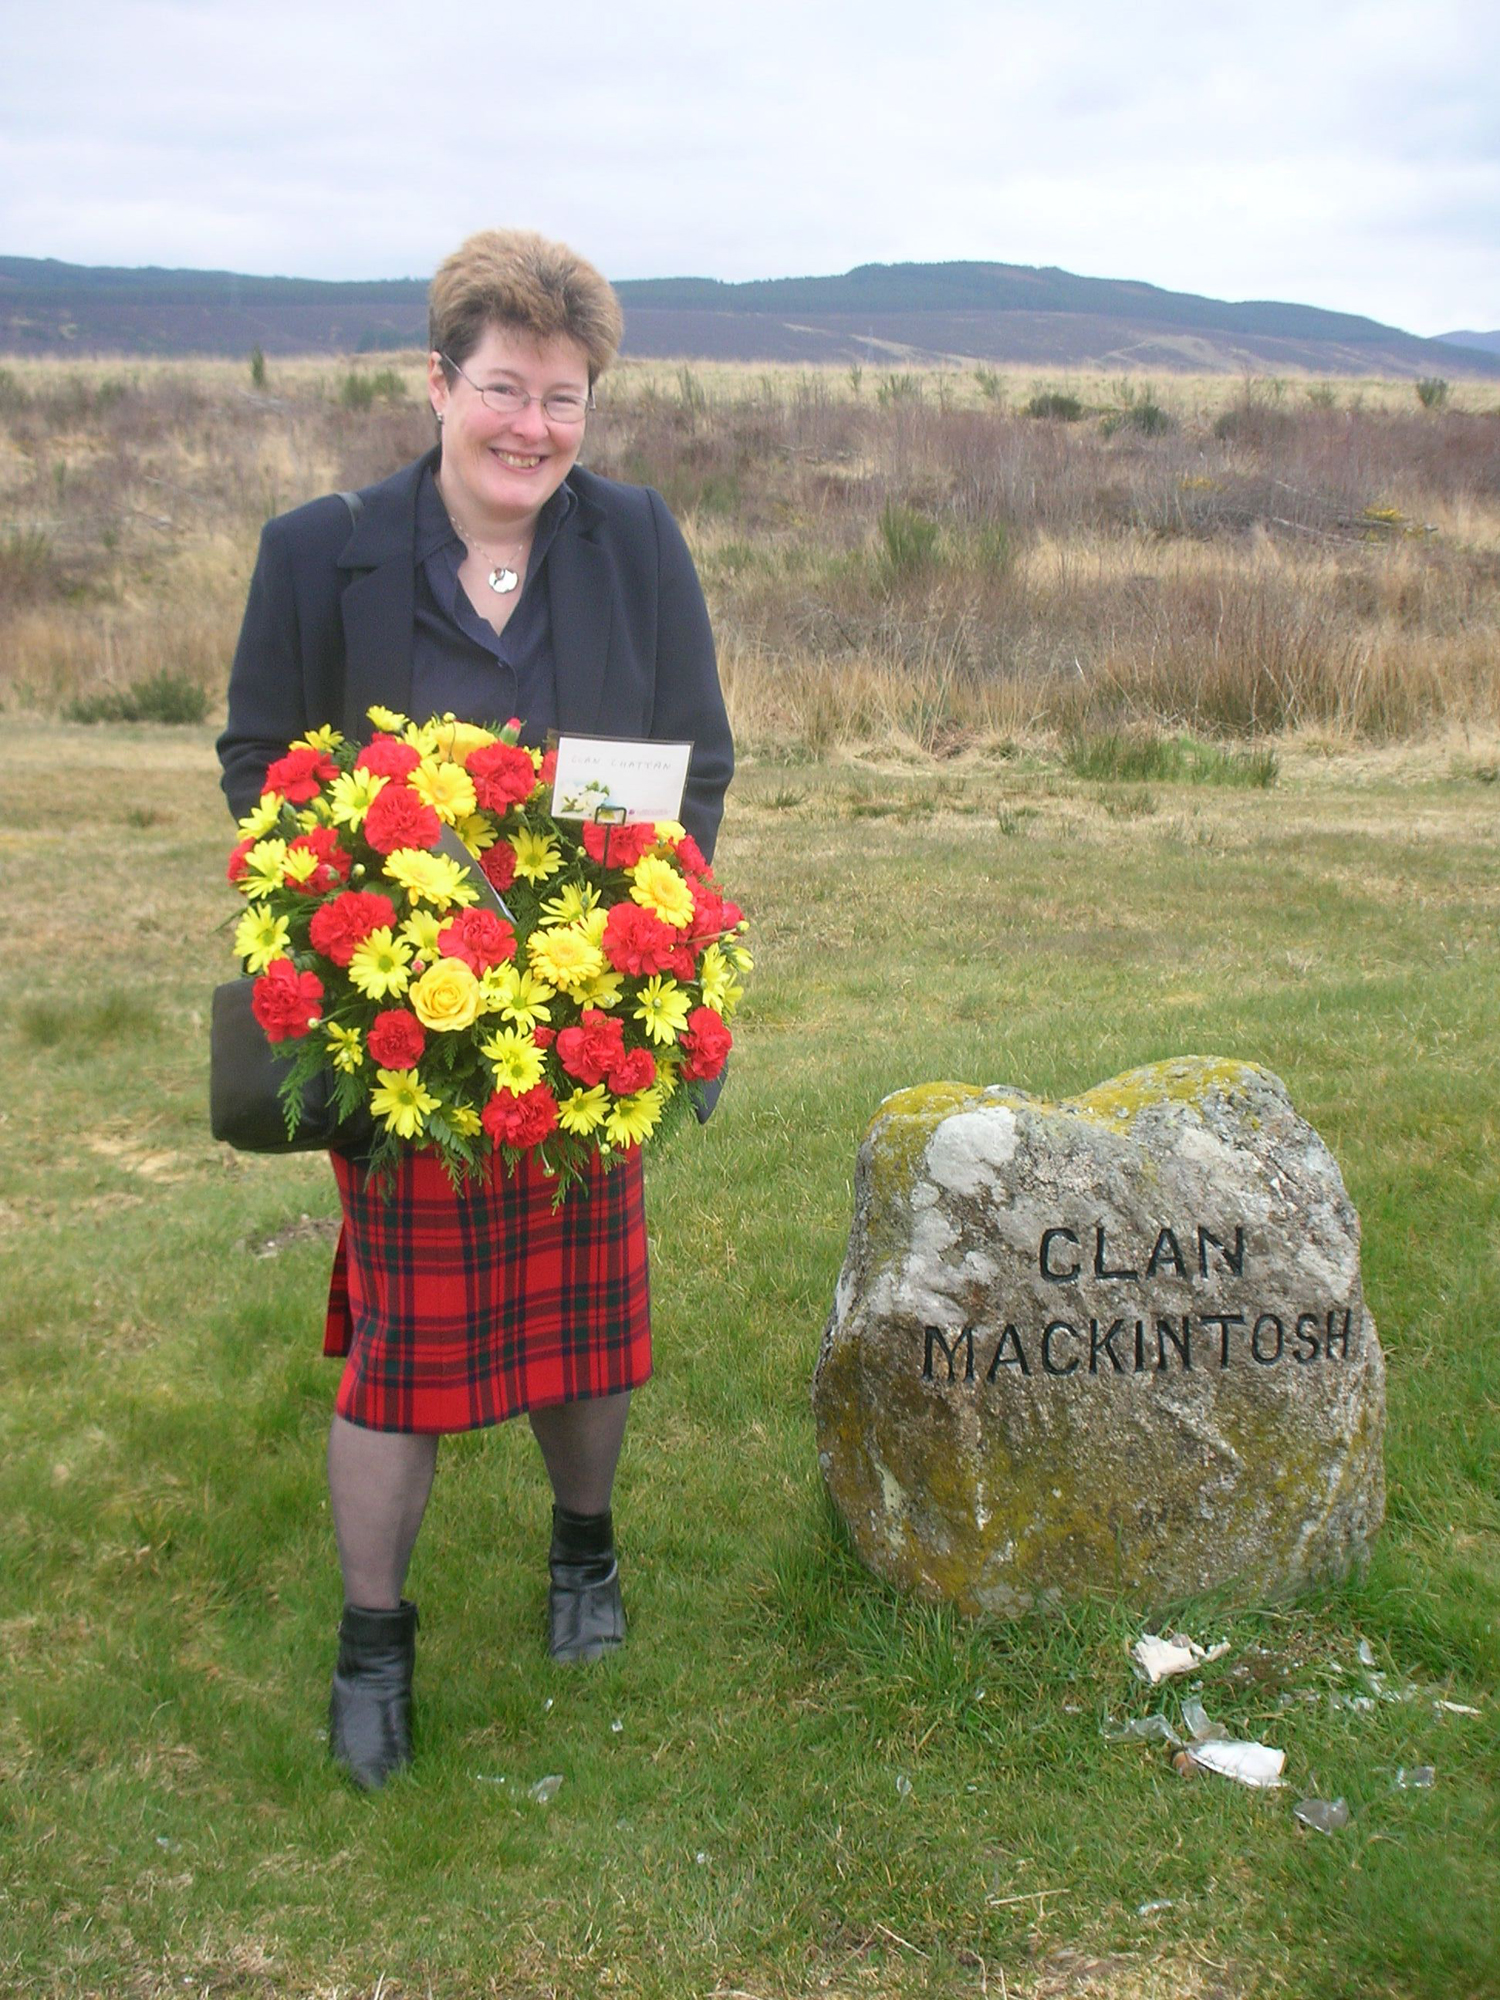 Louisa_Cross_at_Clan_Mackintosh_marker_on_the_battlefiled